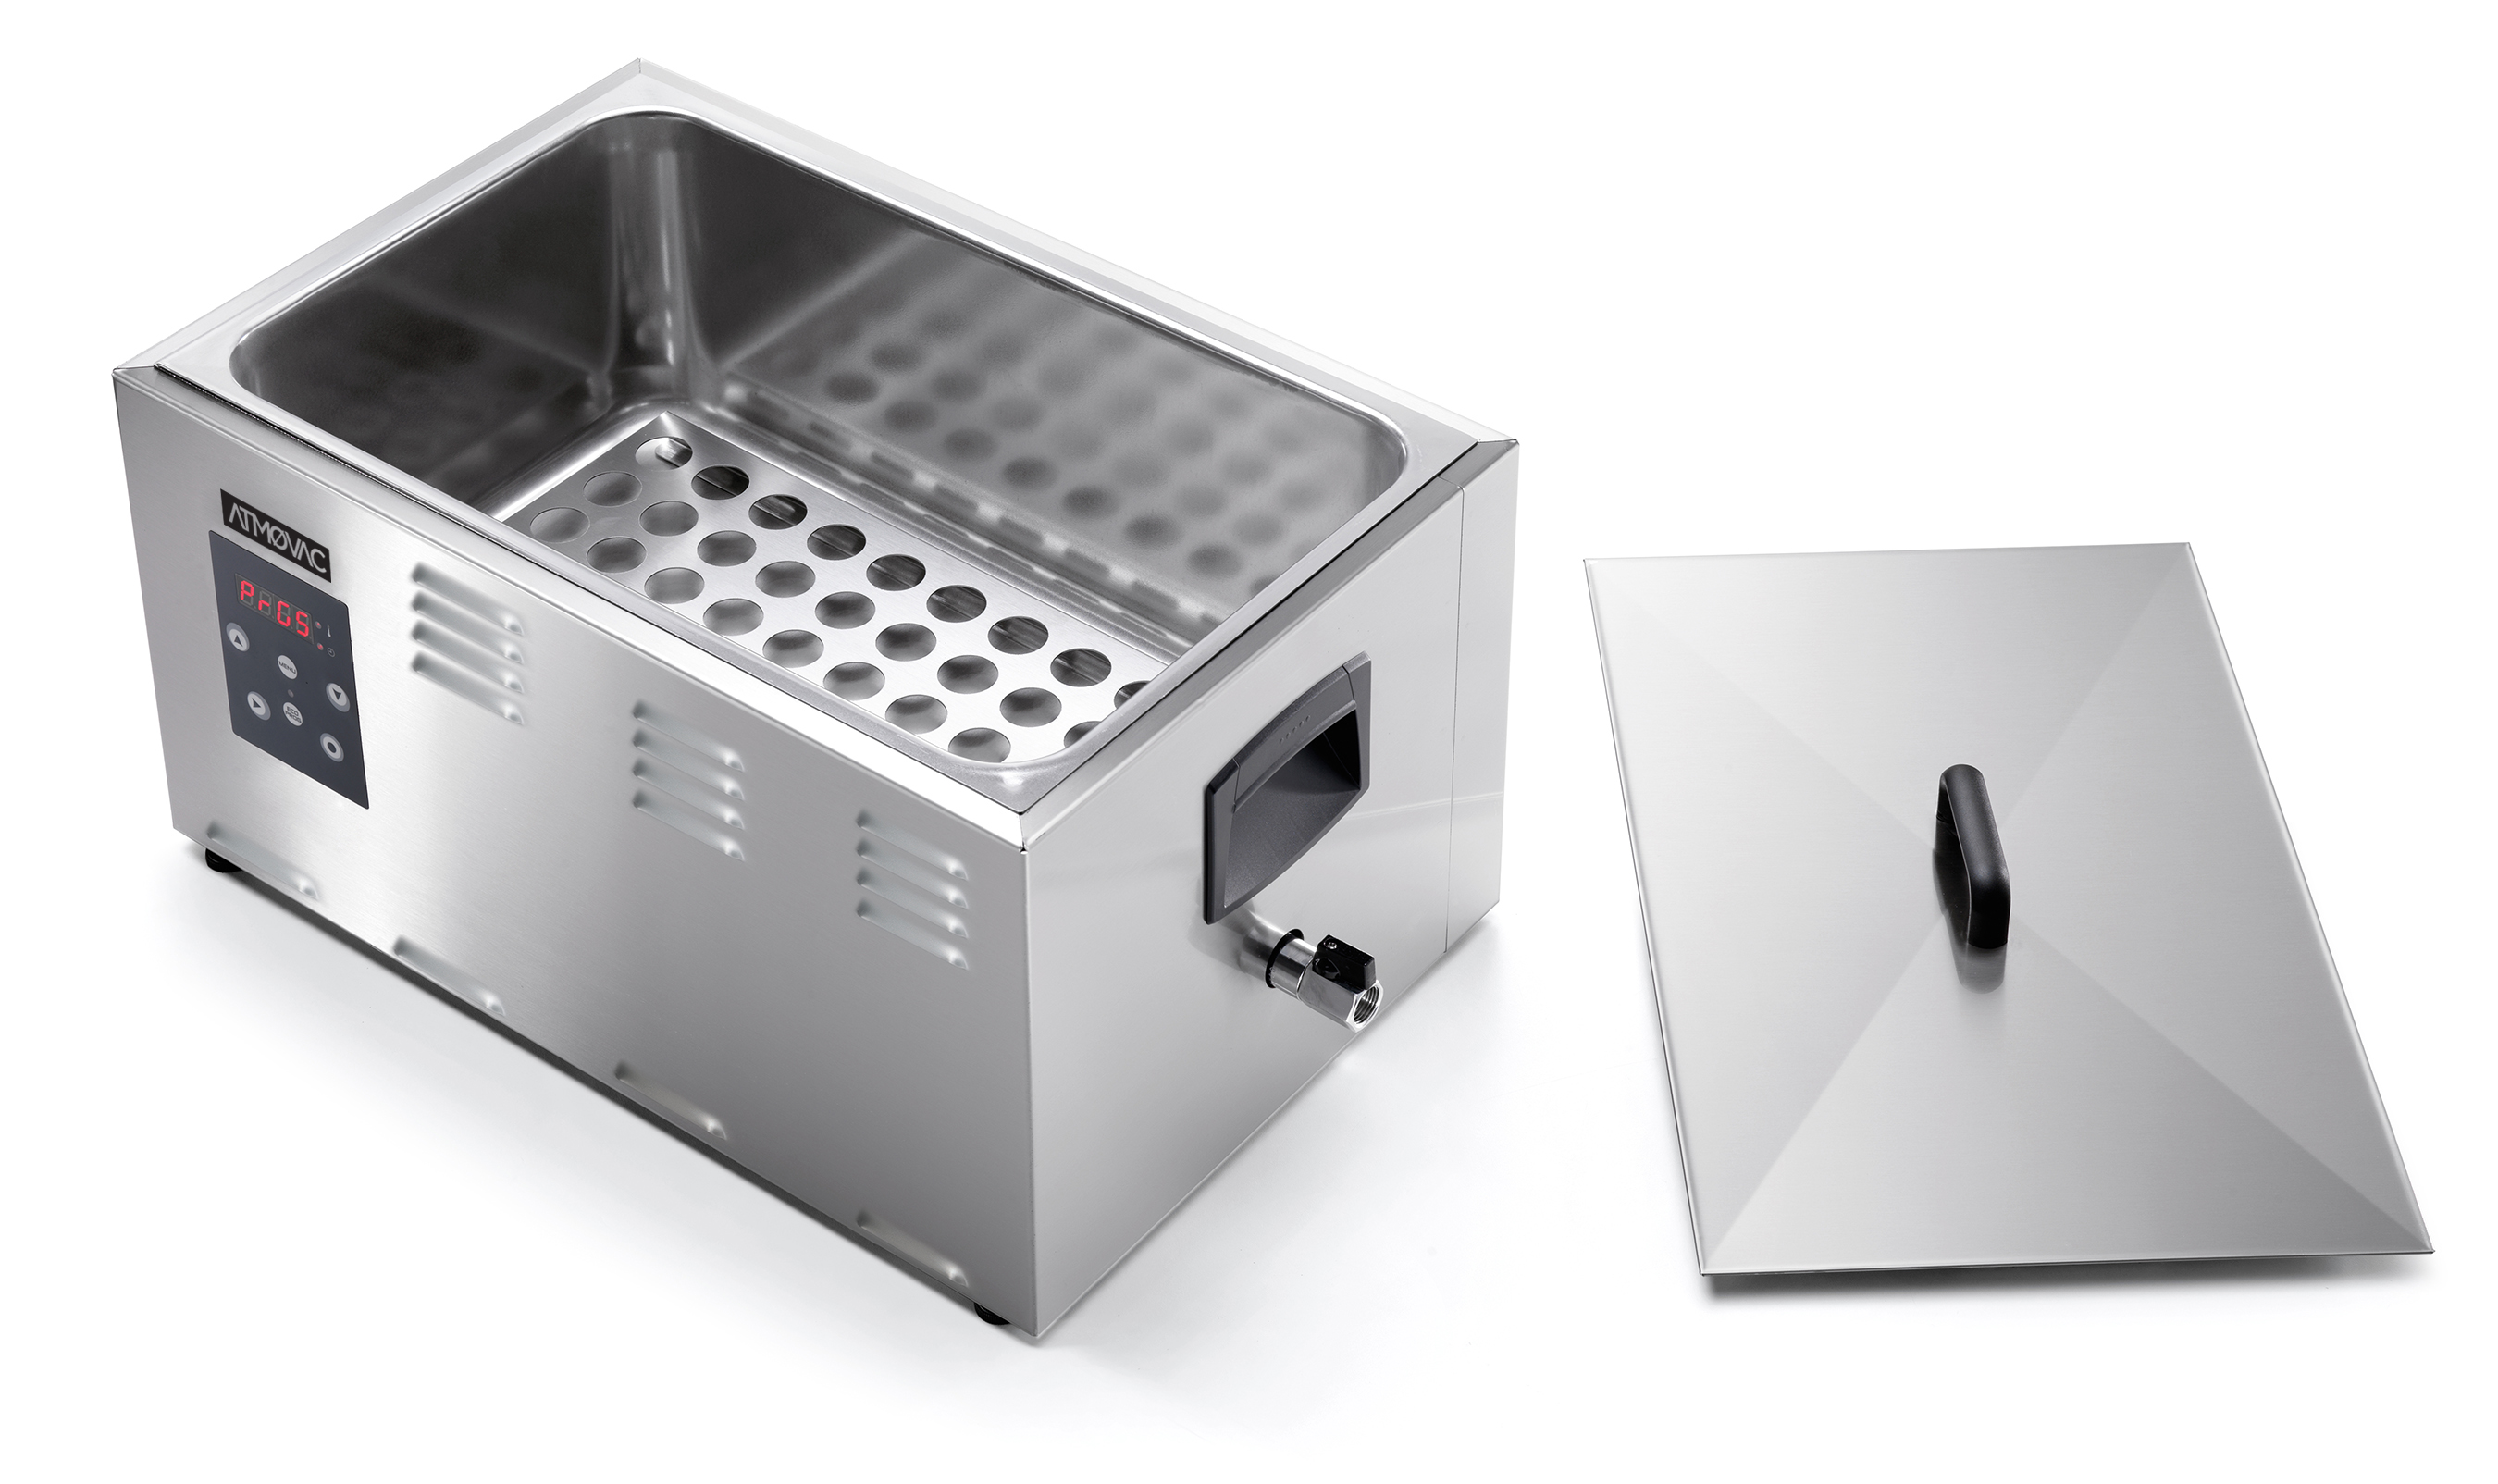 Eurodib USA SR11 sous-vide cooking